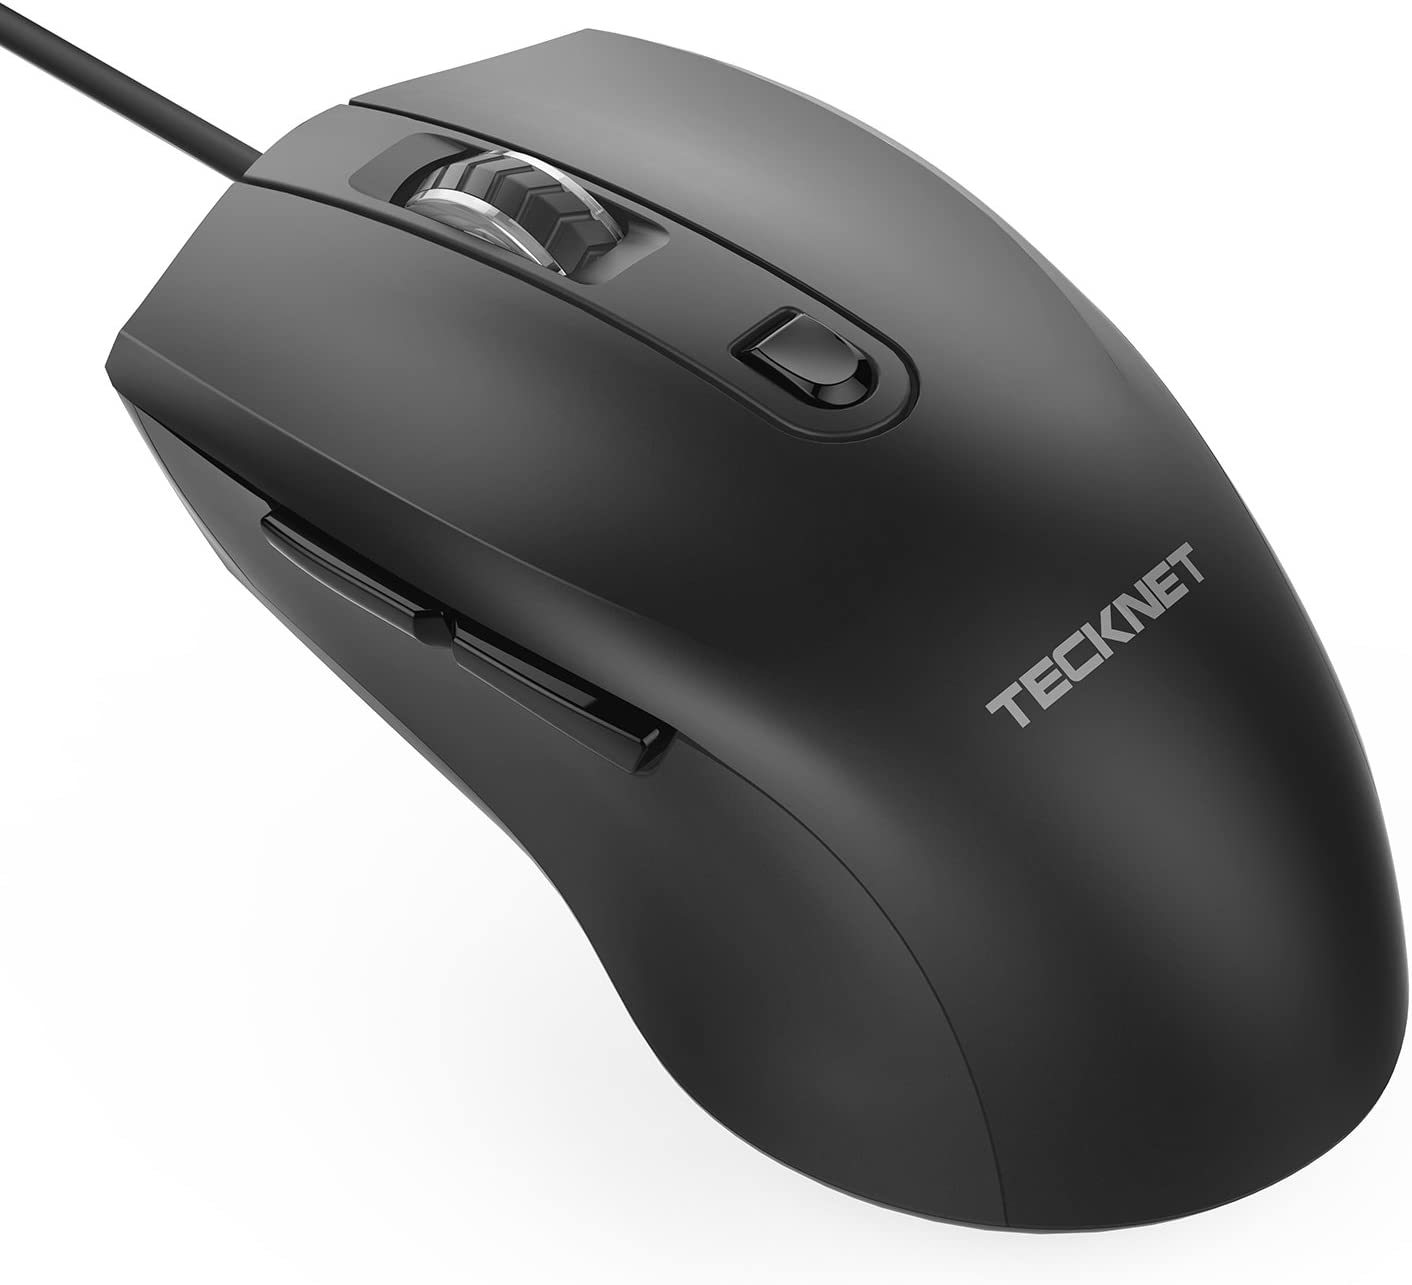 TeckNet 6-Button USB Wired Mouse Optical Computer Wired Mice 1000/1600 DPI, Office Business Mouse for Laptop Notebook, Fit for Windows7/8/10/XP/98, Vista